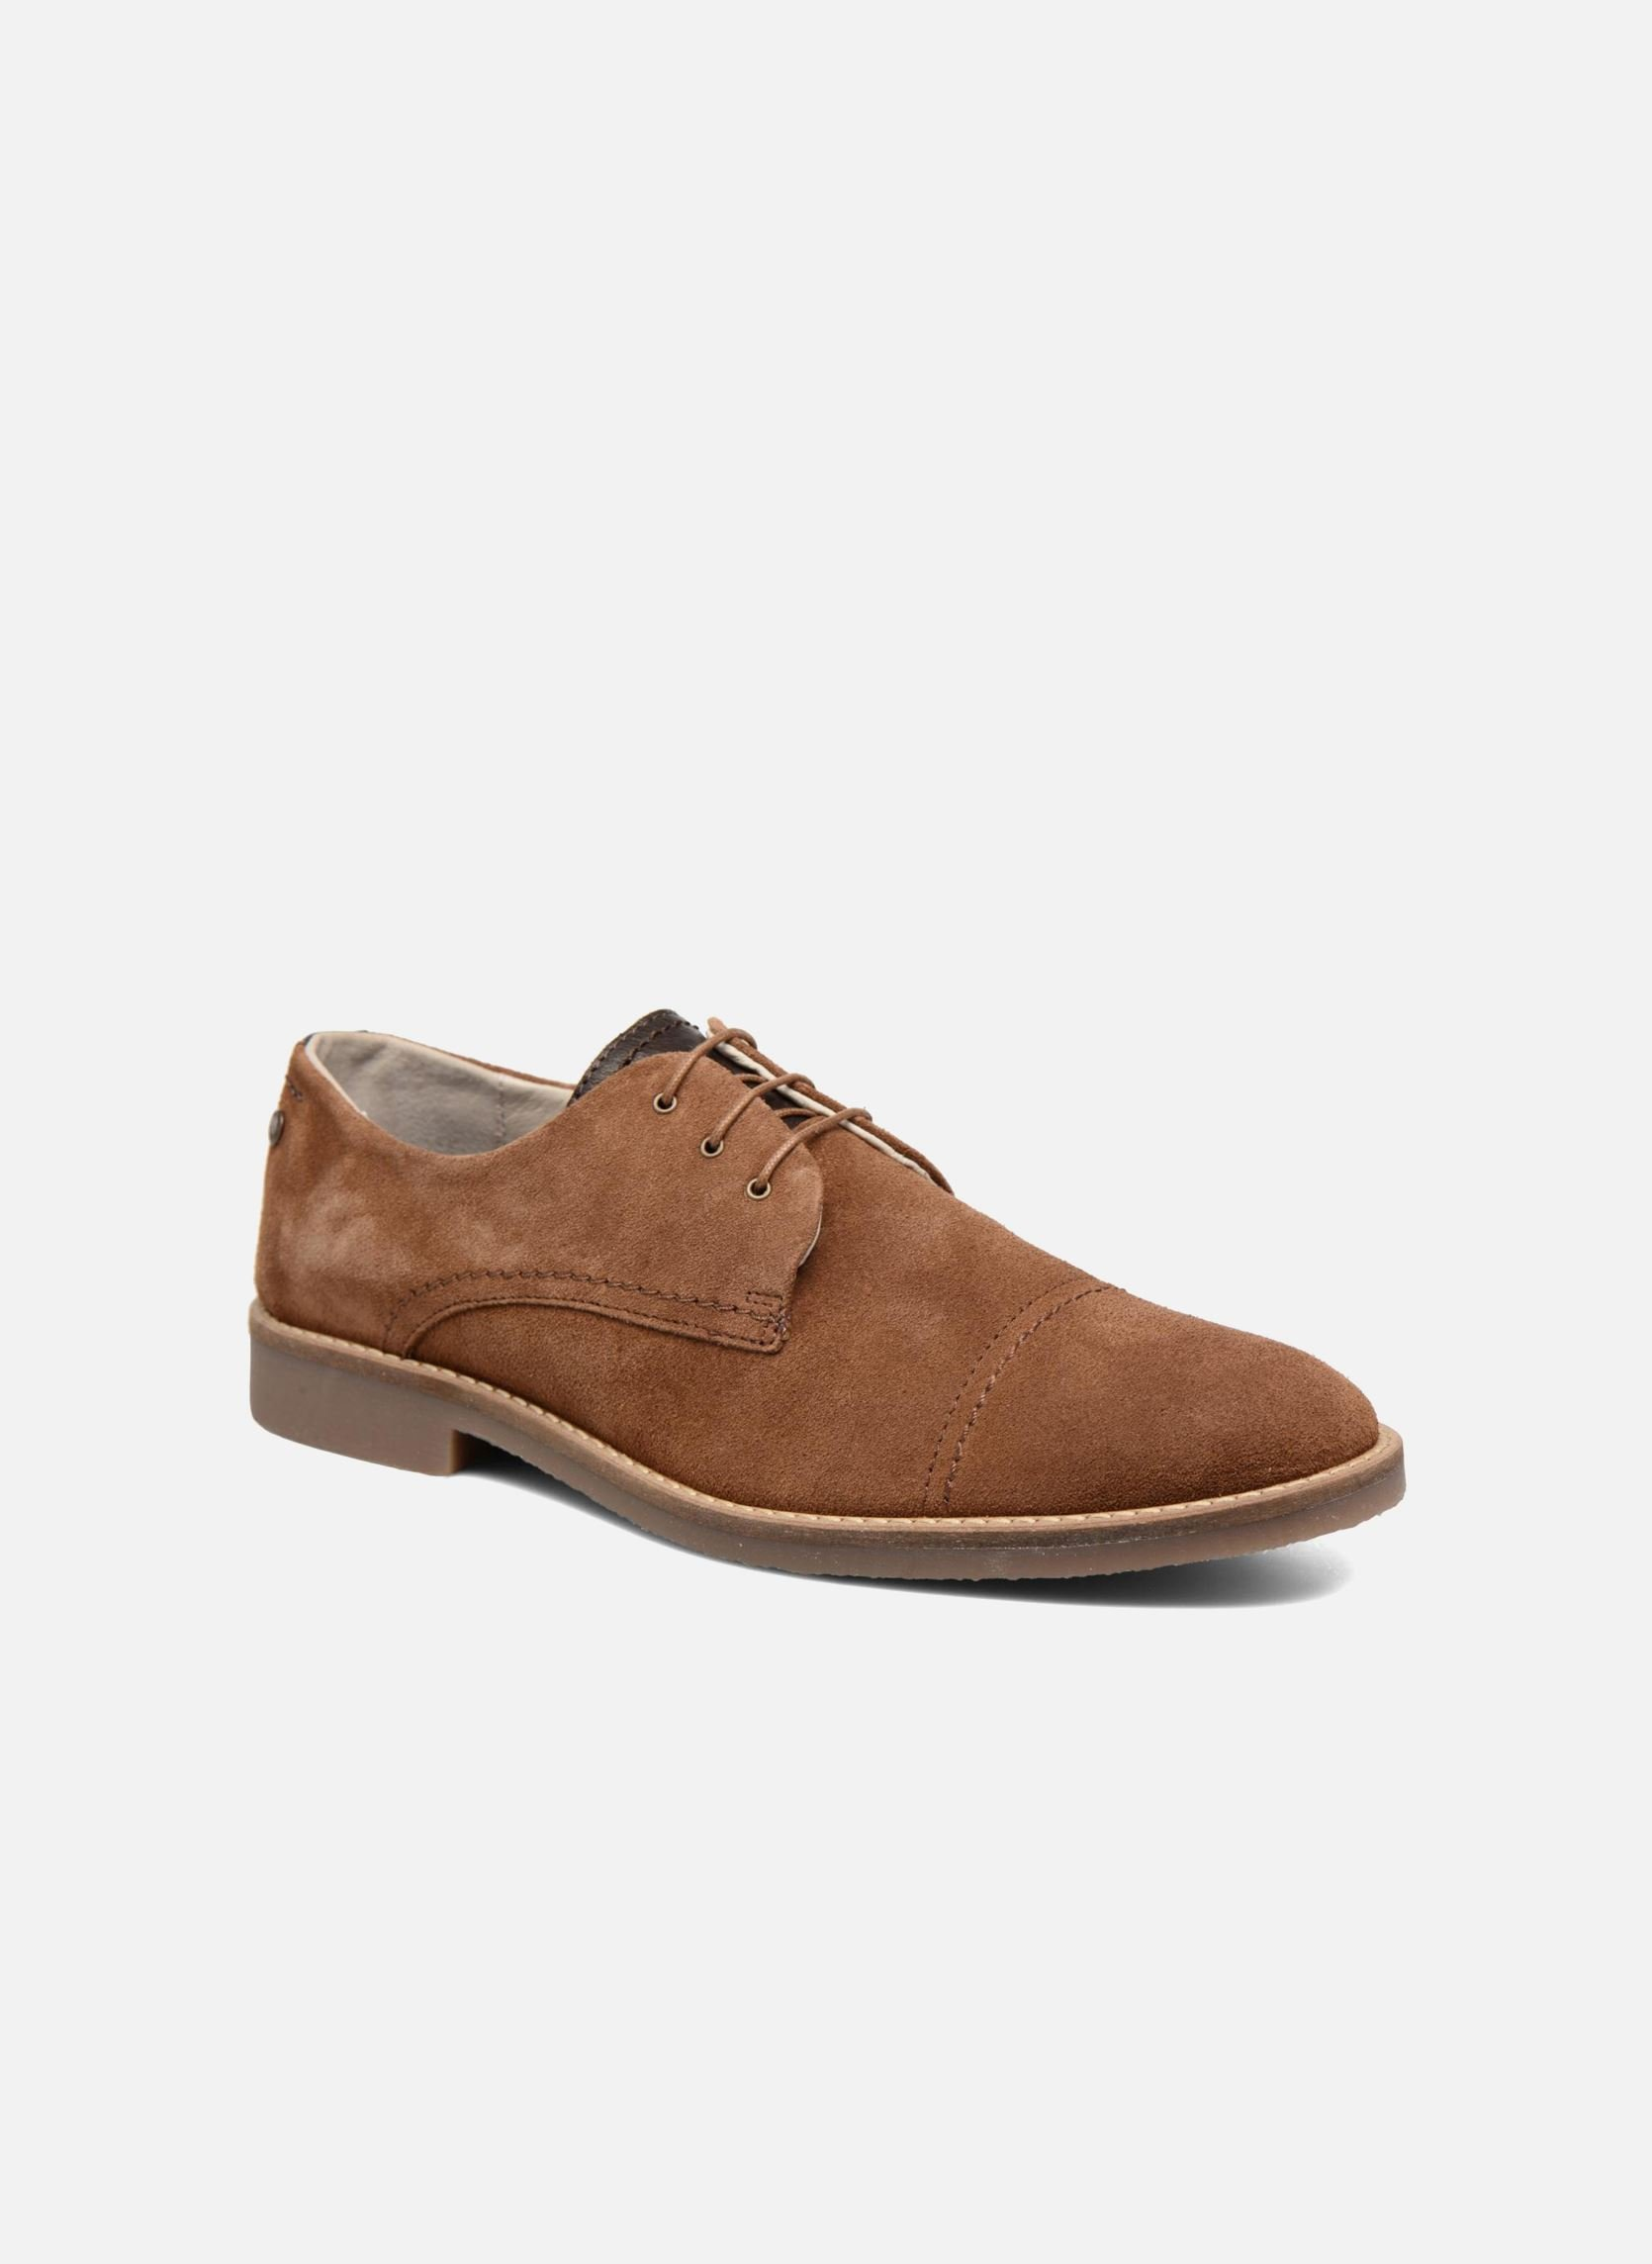 Jack Amp Jones Jfw Billy Suede Lace Up Shoes In Brown At Sarenza Co Uk 286747